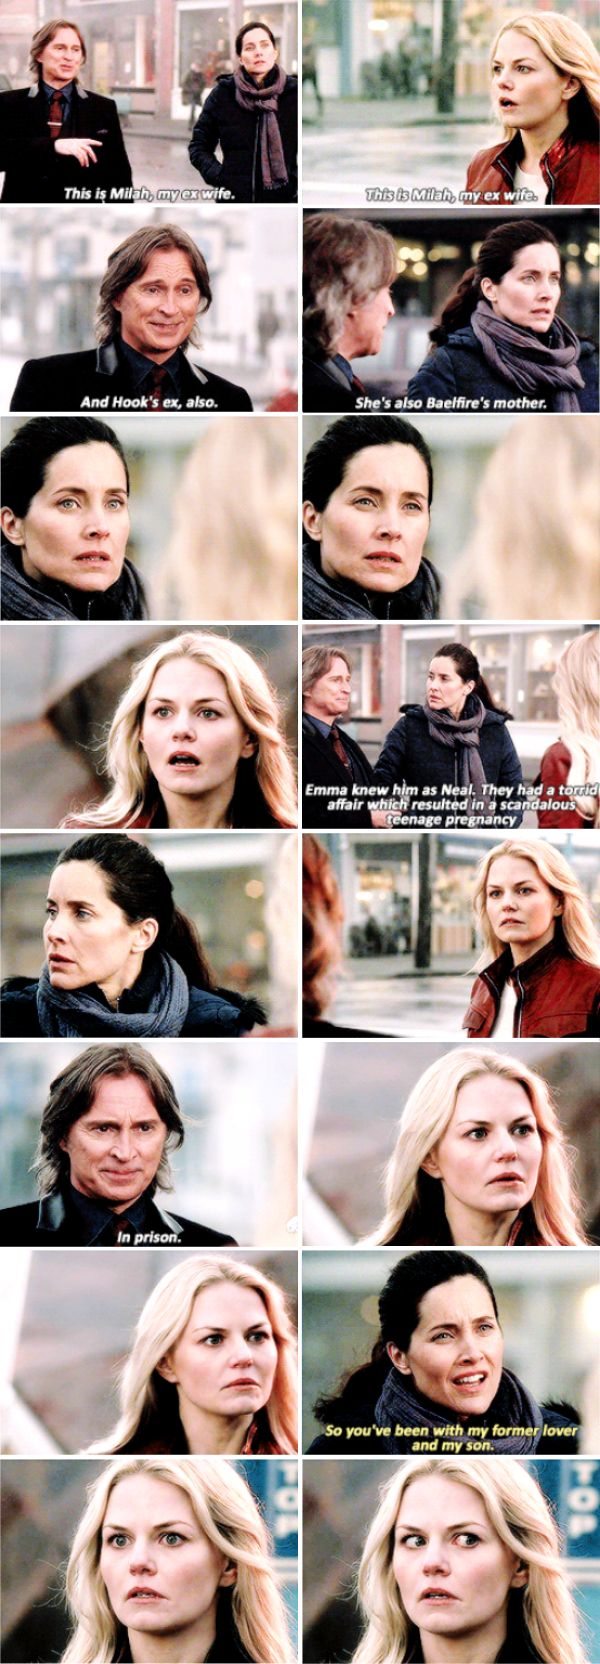 """This is Milah, my ex-wife. And Hook's ex, also. She's also Baelfire's mother"" - Rumple, Milah and Emma #OnceUponATime ((One of the best scenes of the episode, hahahaha))"